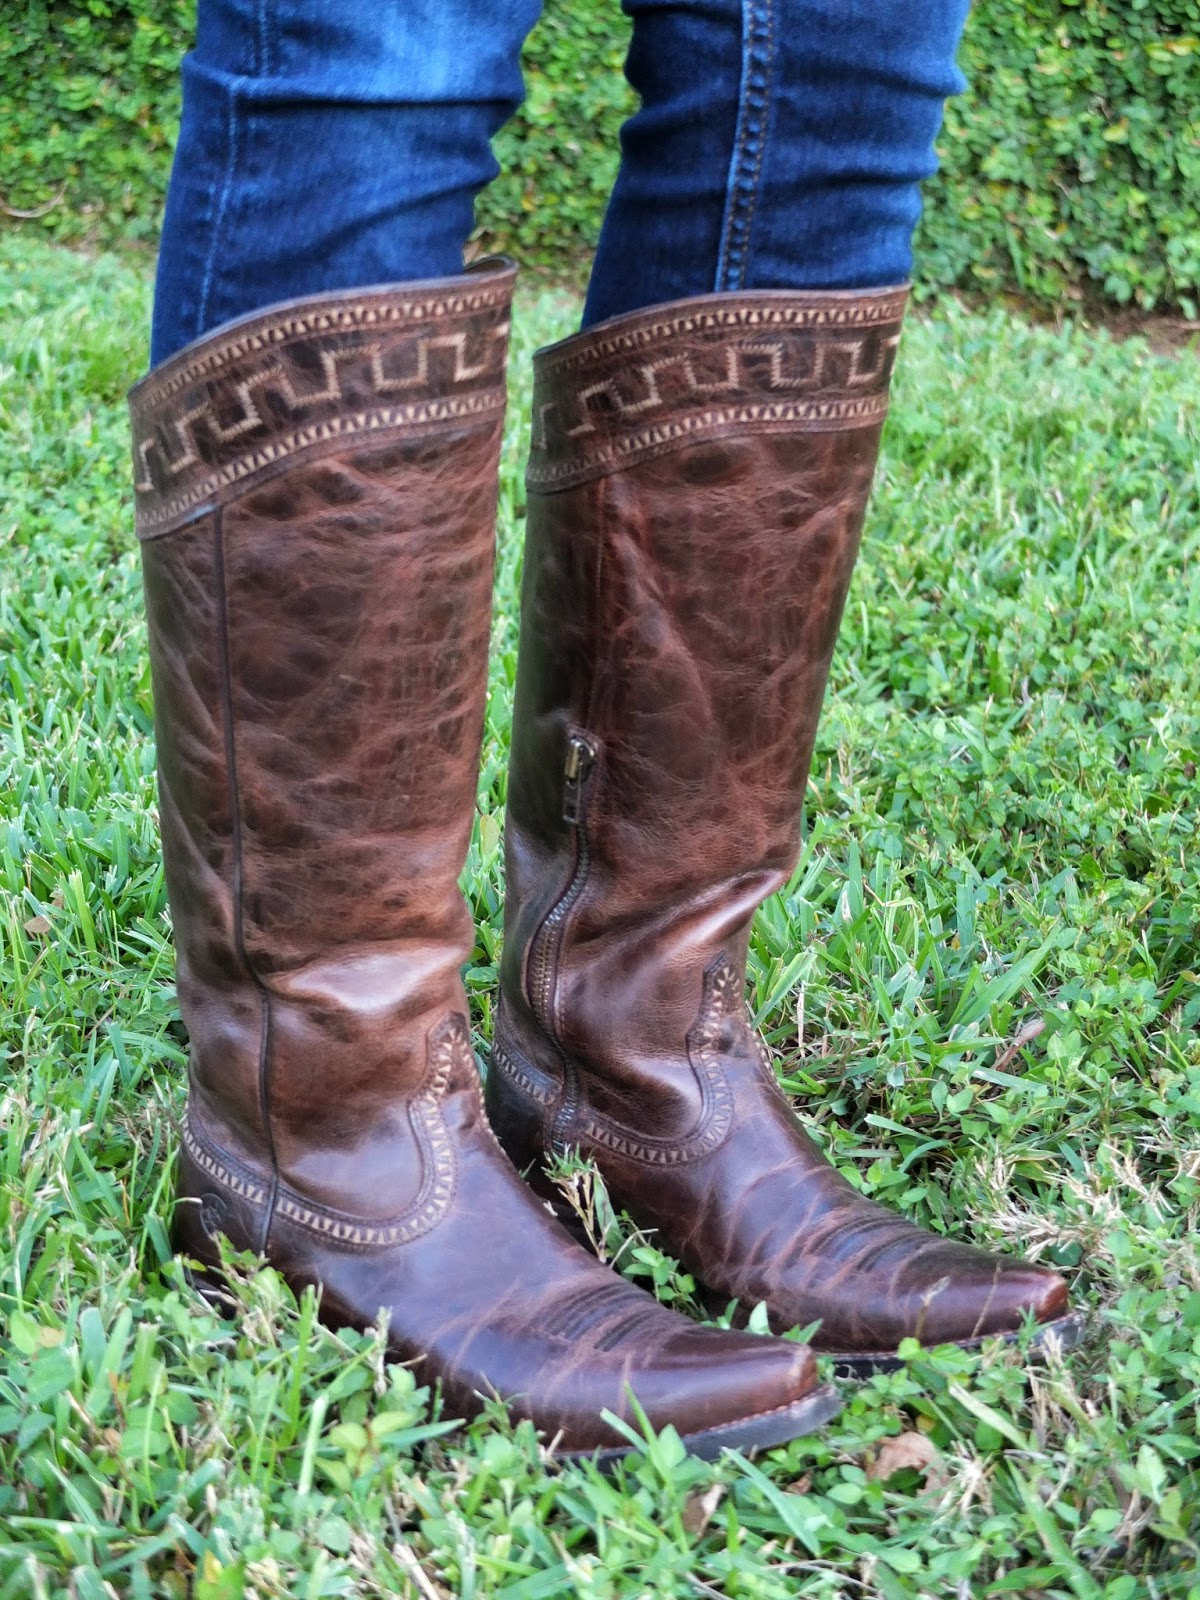 Ariat Women's Riding Boots, Cavender's Women's Riding Boots, Cavender's Tall Riding Boots, Tall Brown Riding Boots,